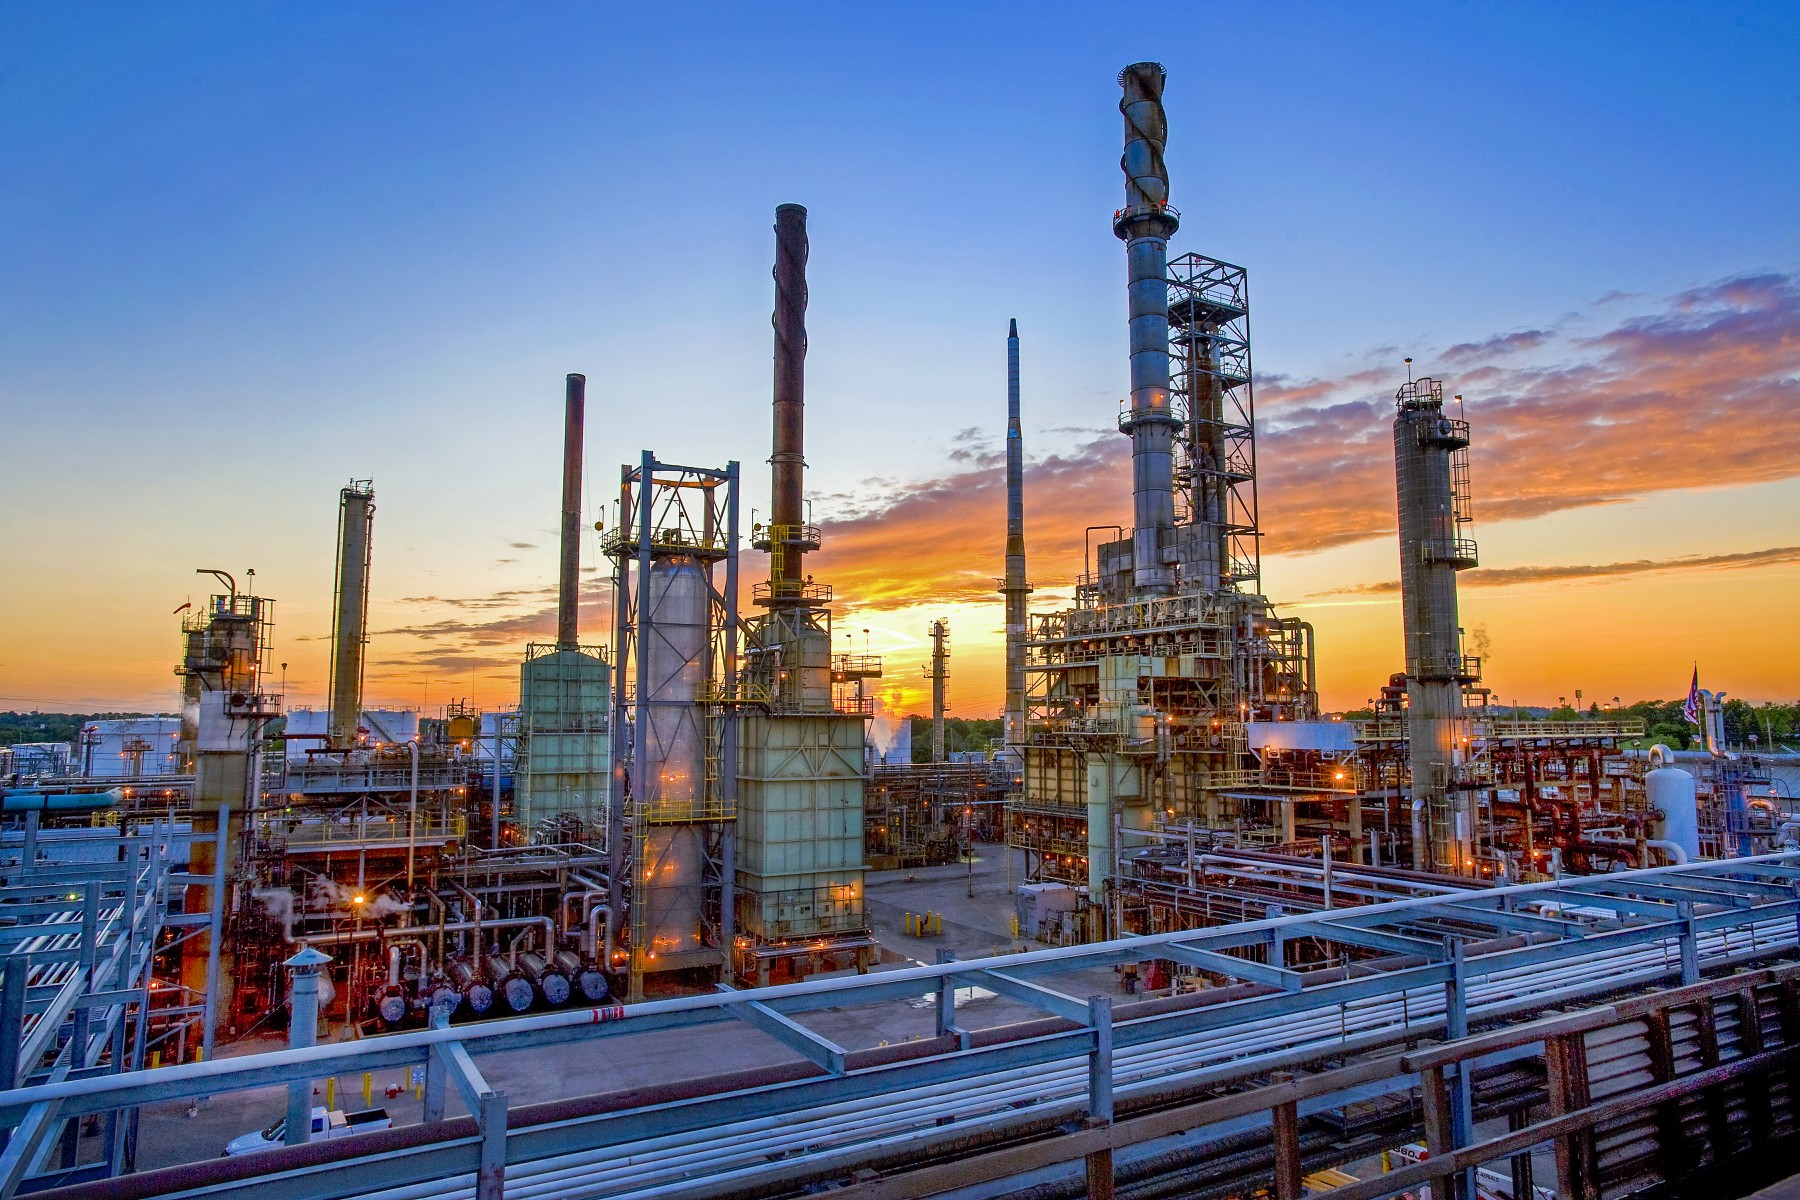 MPC's refinery in Canton, Ohio, has qualified for ENERGY STAR certification every year since the program began.